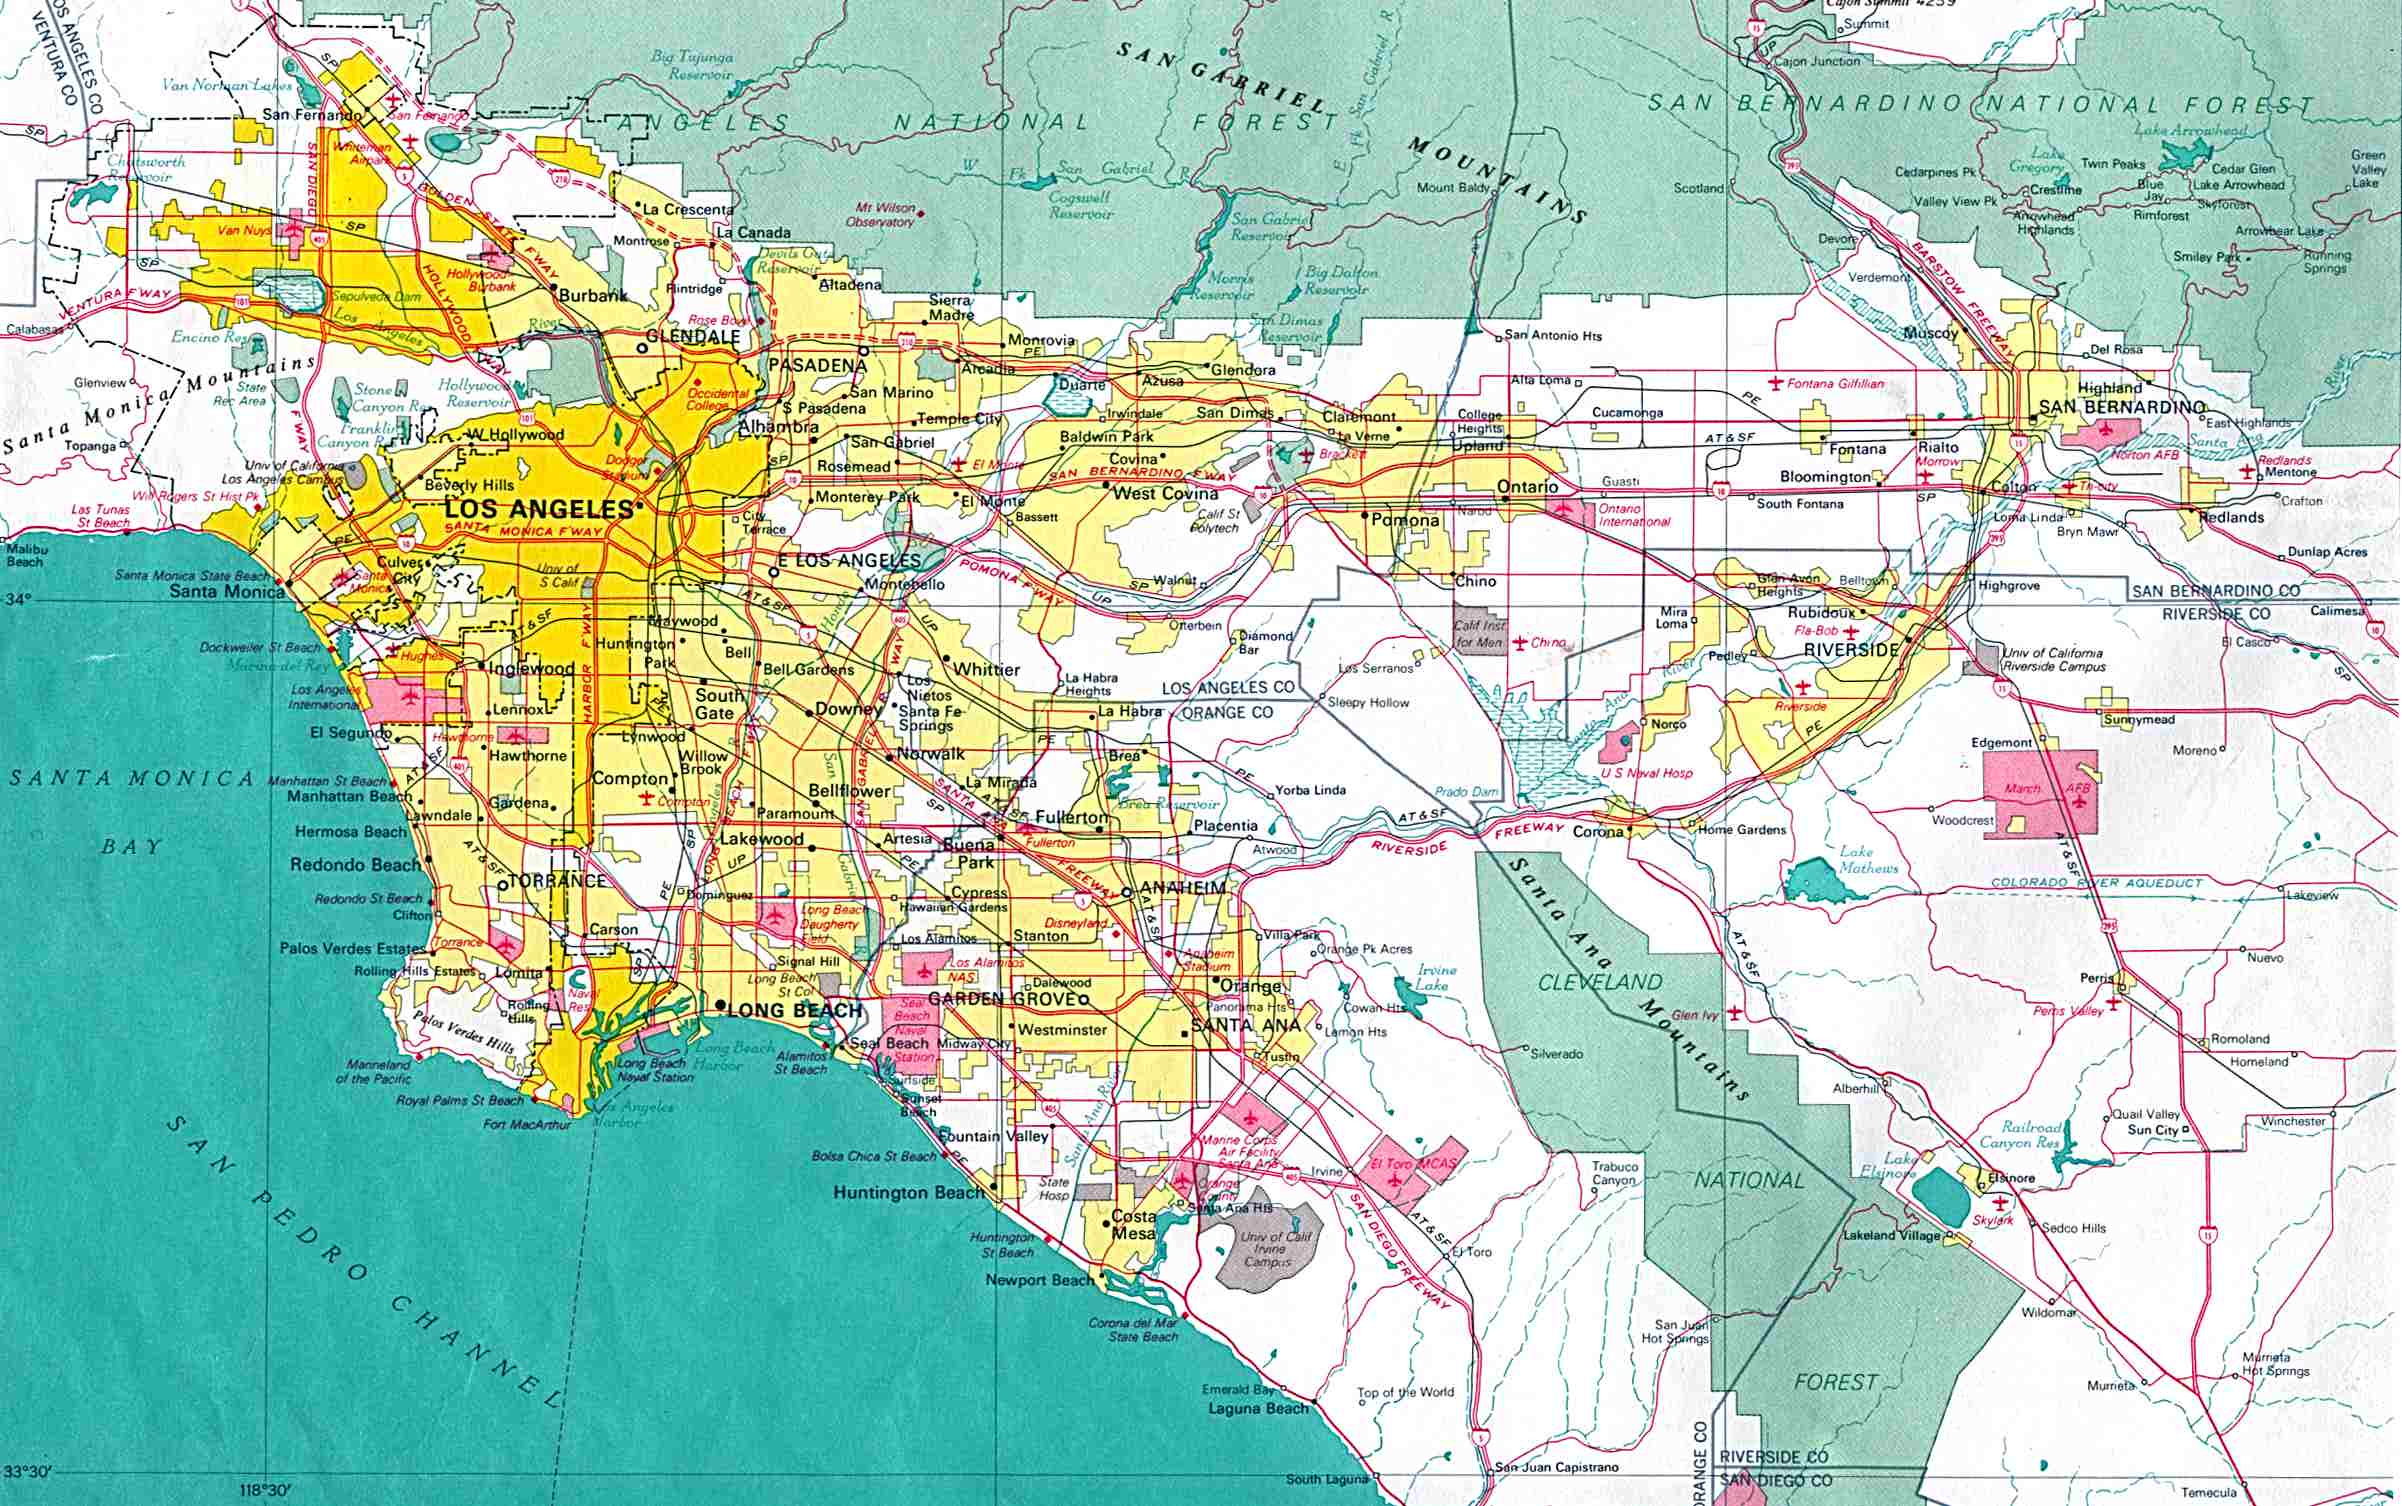 California Map With Cities A Map Of Los Angeles California - Klipy - Map Of Los Angeles California Area